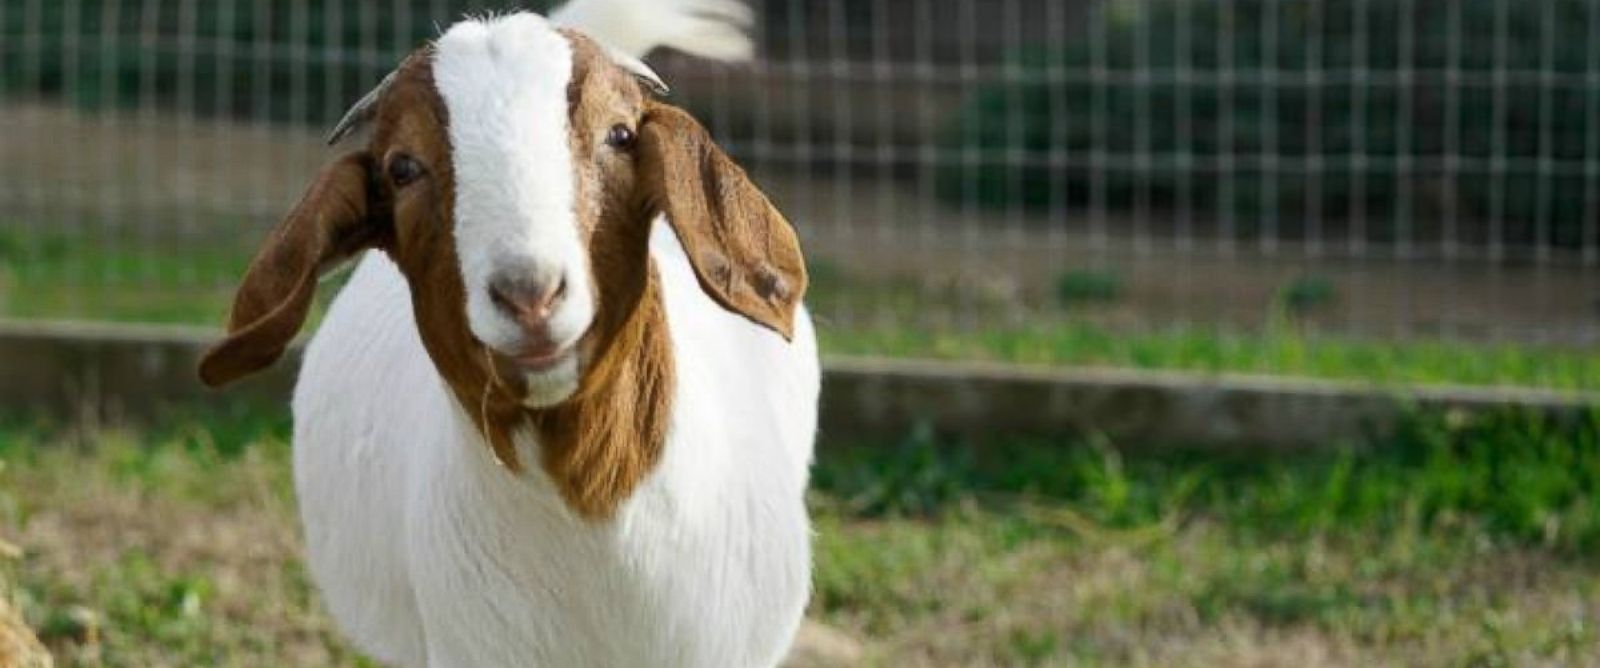 PHOTO:Marcia was born blind and was rescued by Farm Sanctuary on May 3, 2015 at about eight weeks old. She constantly wanted a companion and would cry whenever she was alone.